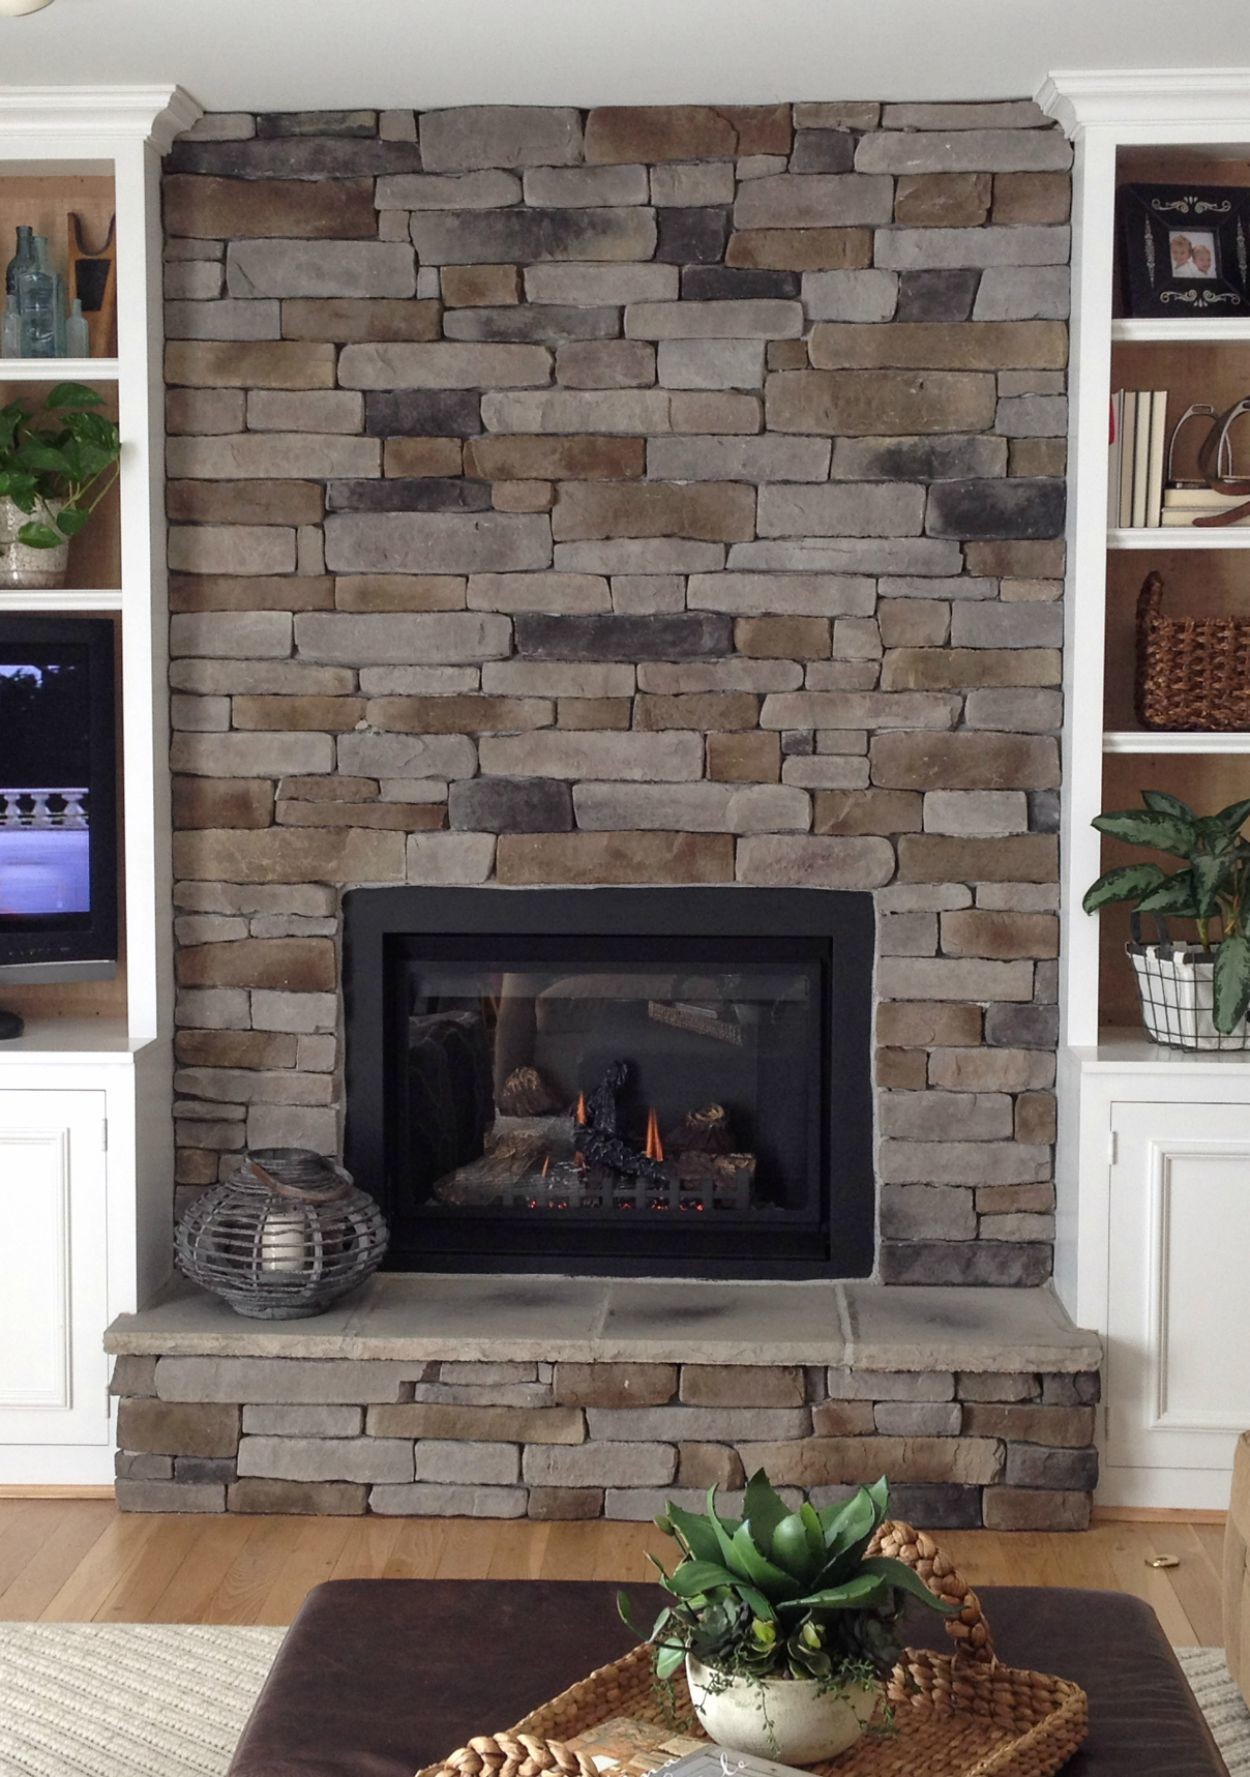 how to create the stacked stone fireplace look on a budget martha stewart - Stone Cladding Fireplace